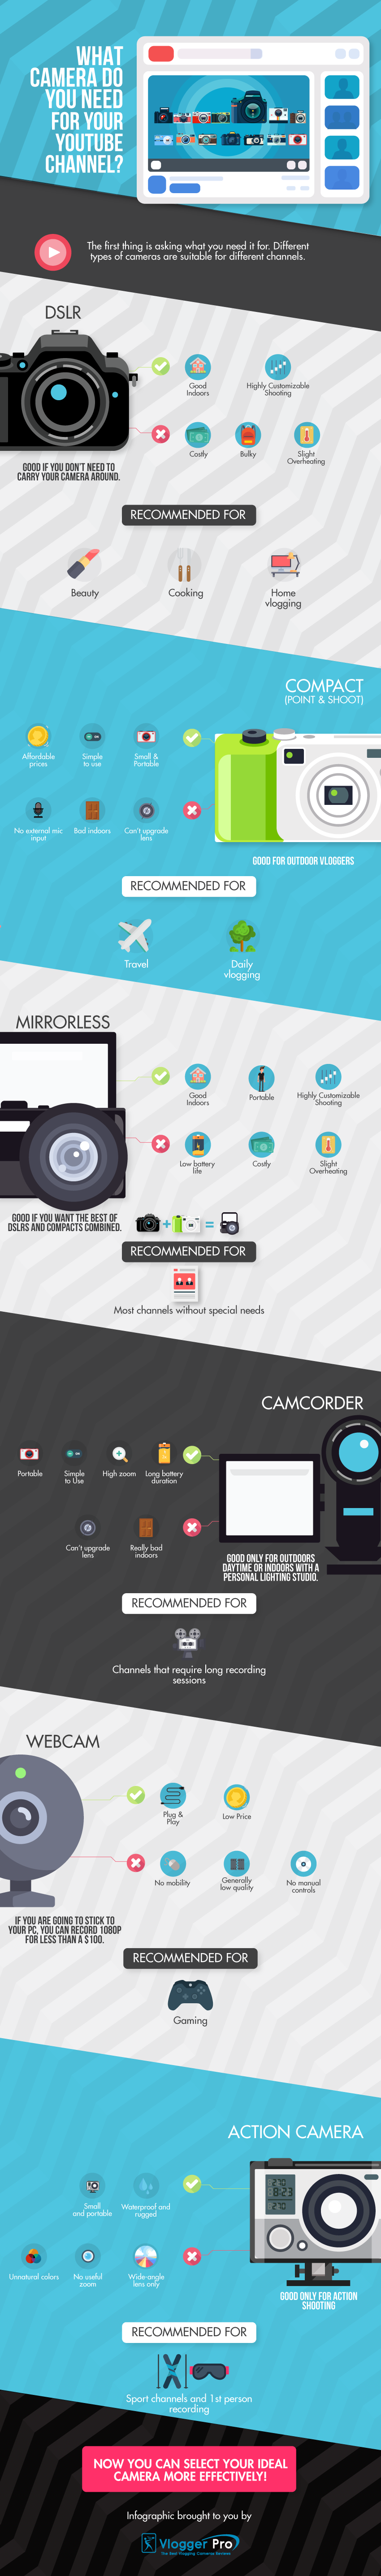 What Camera Do You Need for Your YouTube Channel?